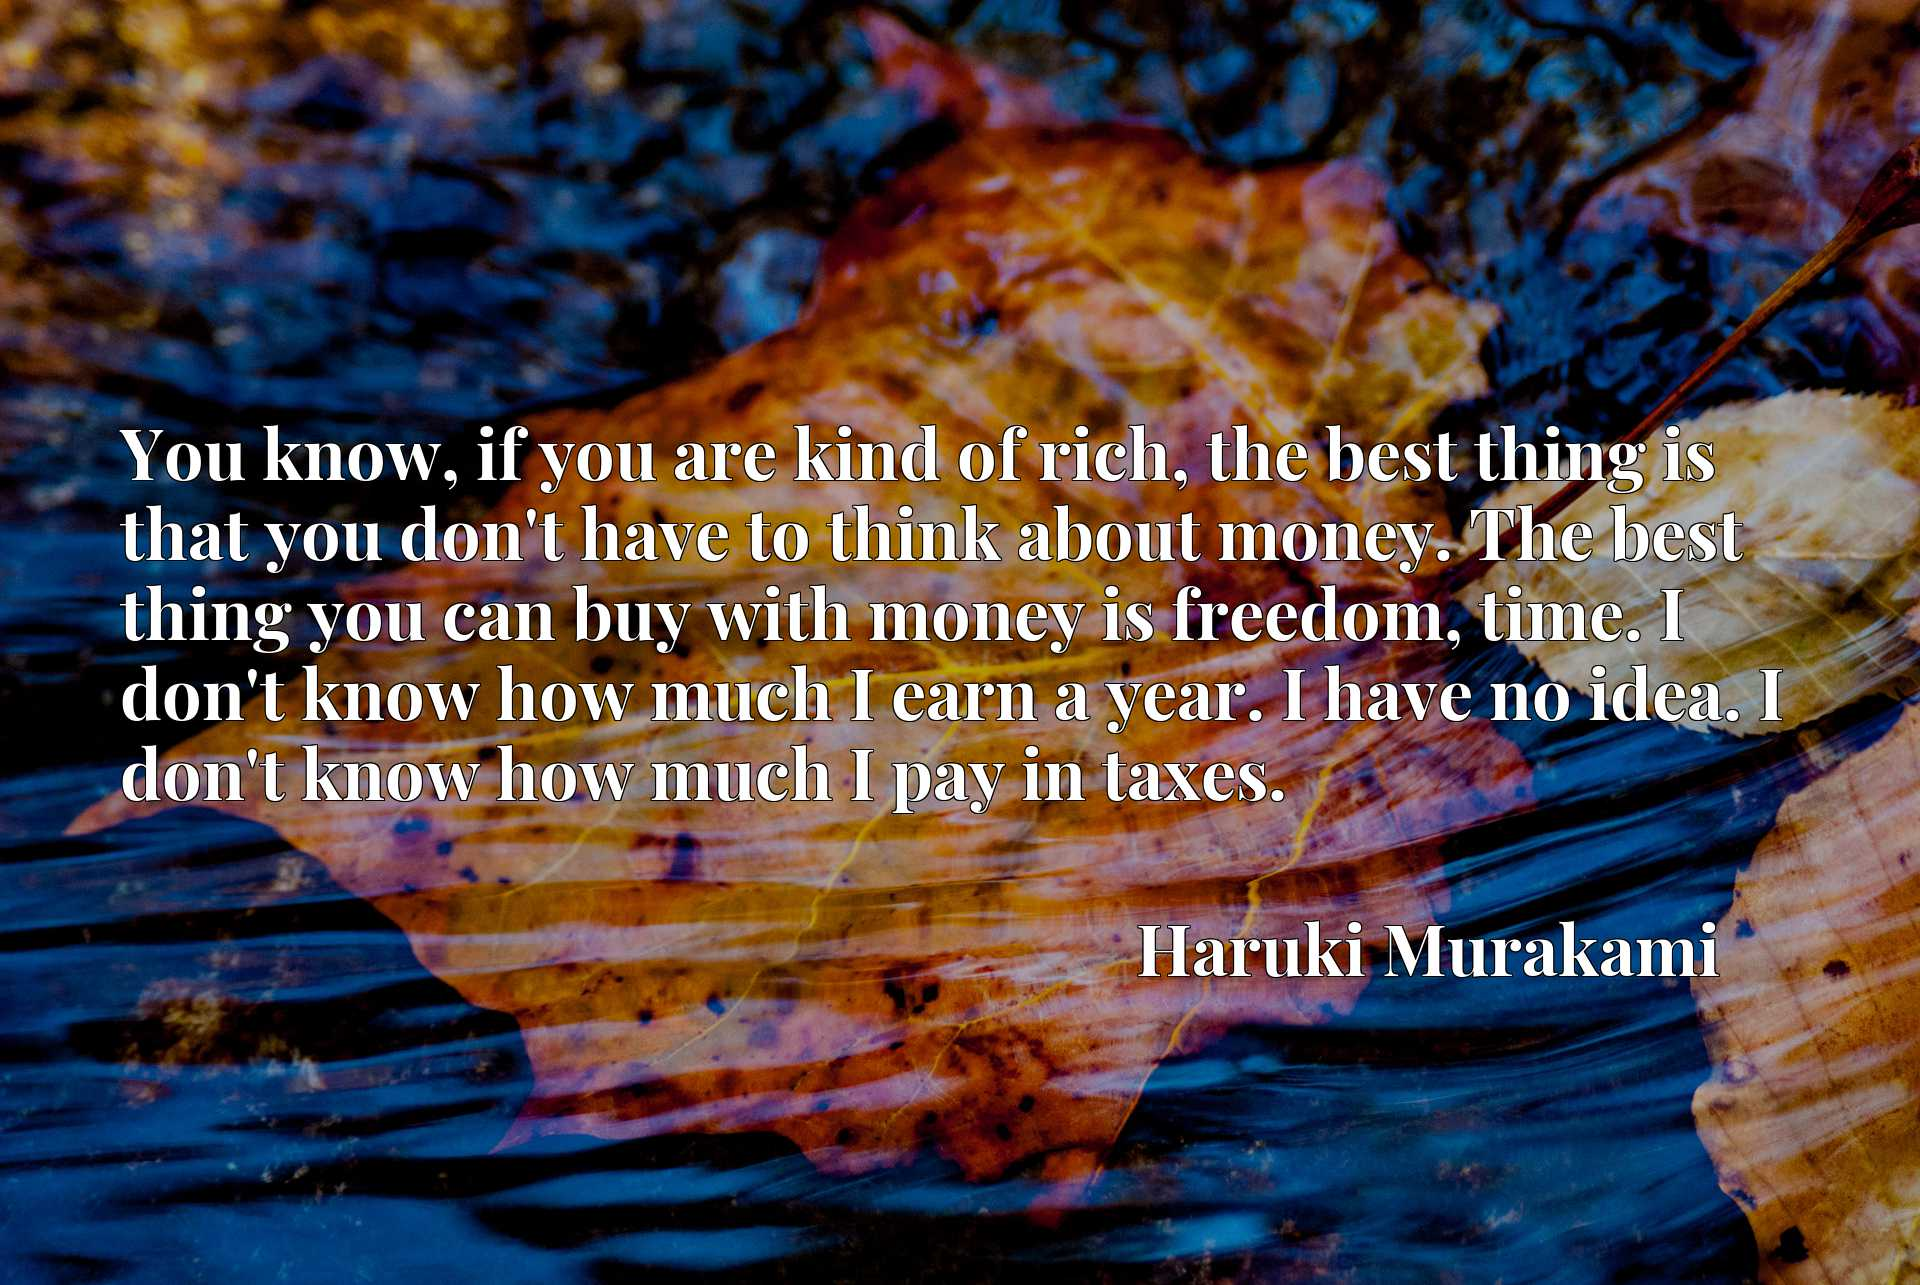 You know, if you are kind of rich, the best thing is that you don't have to think about money. The best thing you can buy with money is freedom, time. I don't know how much I earn a year. I have no idea. I don't know how much I pay in taxes.